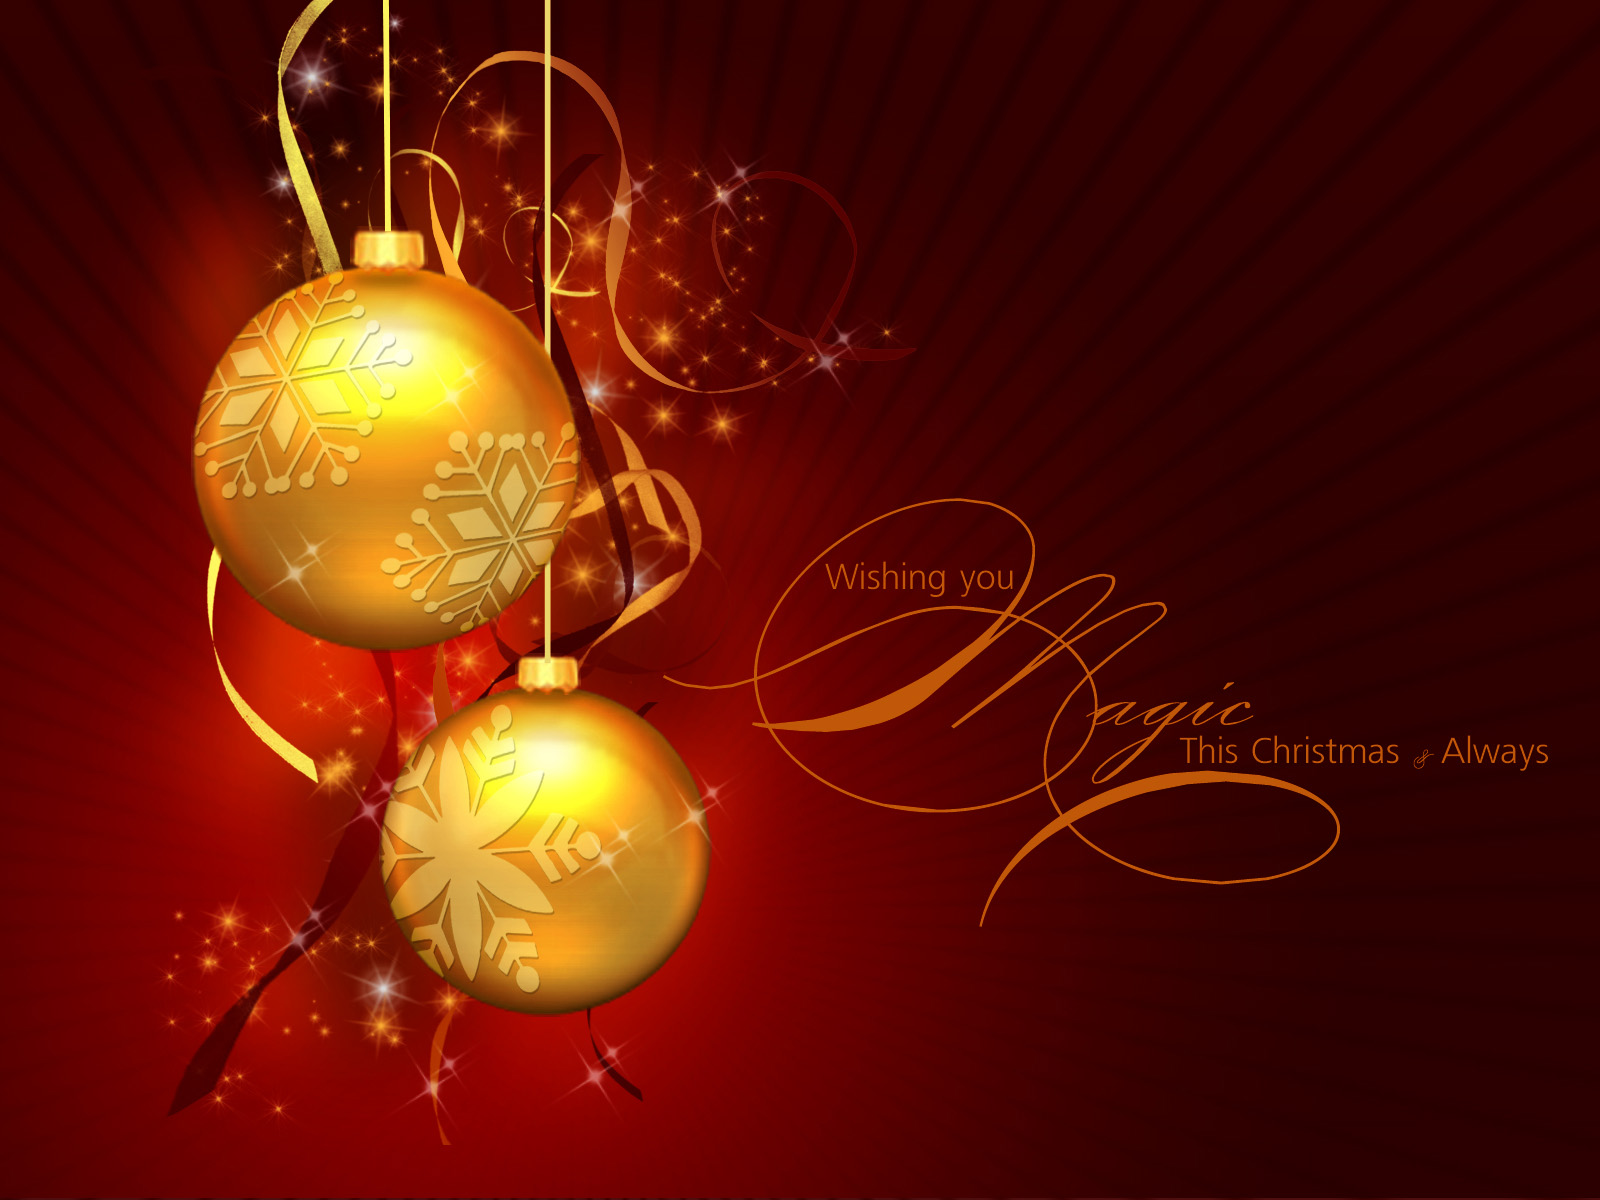 Images Online christmas wallpaper for computer 1600x1200